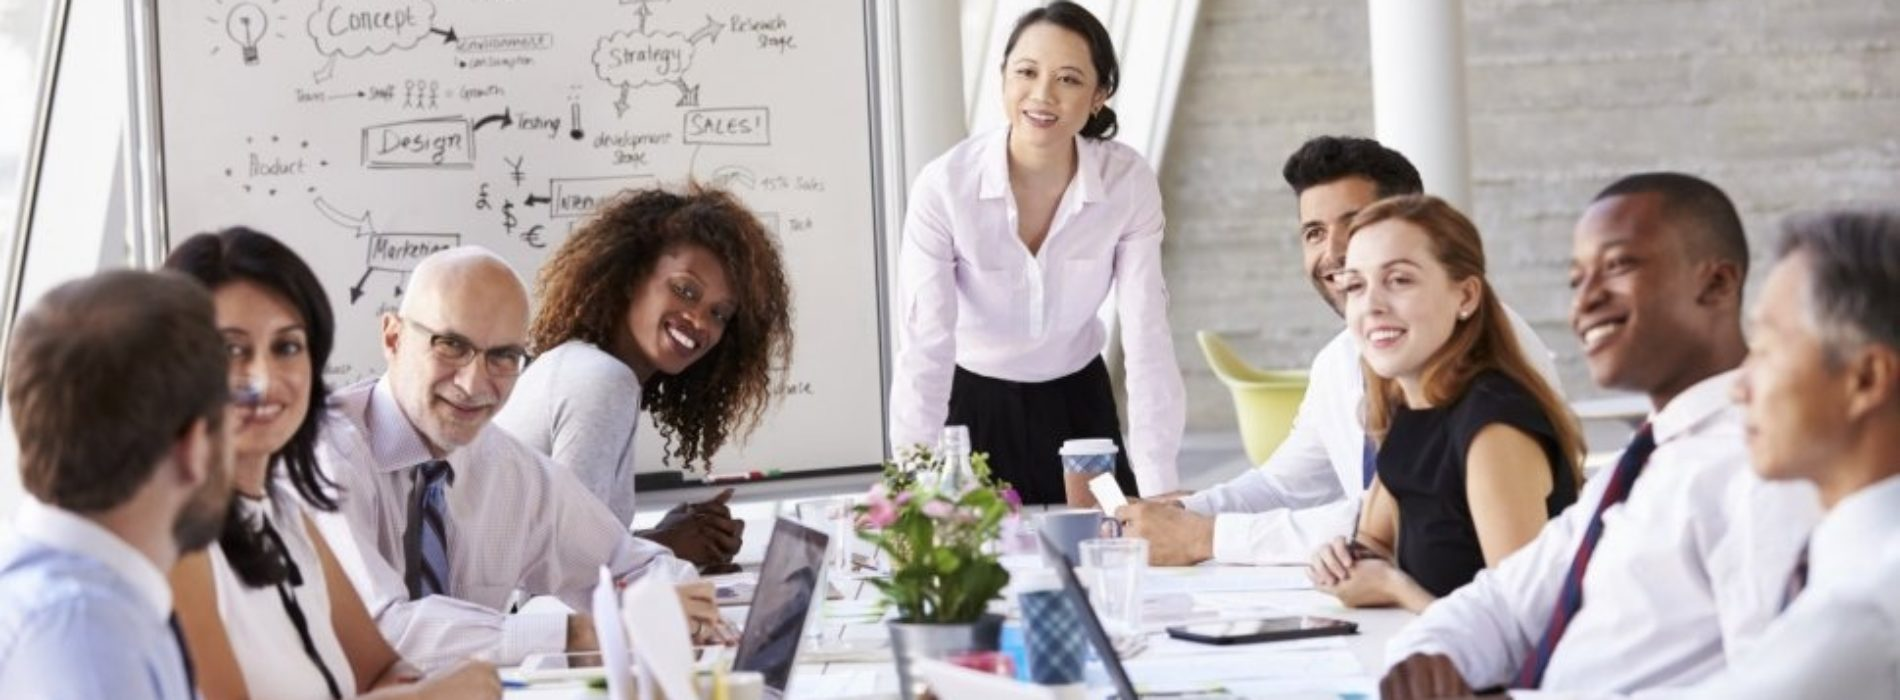 Do You Know What Motivates Your Staff? Make Your Employees Excited to Come to Work